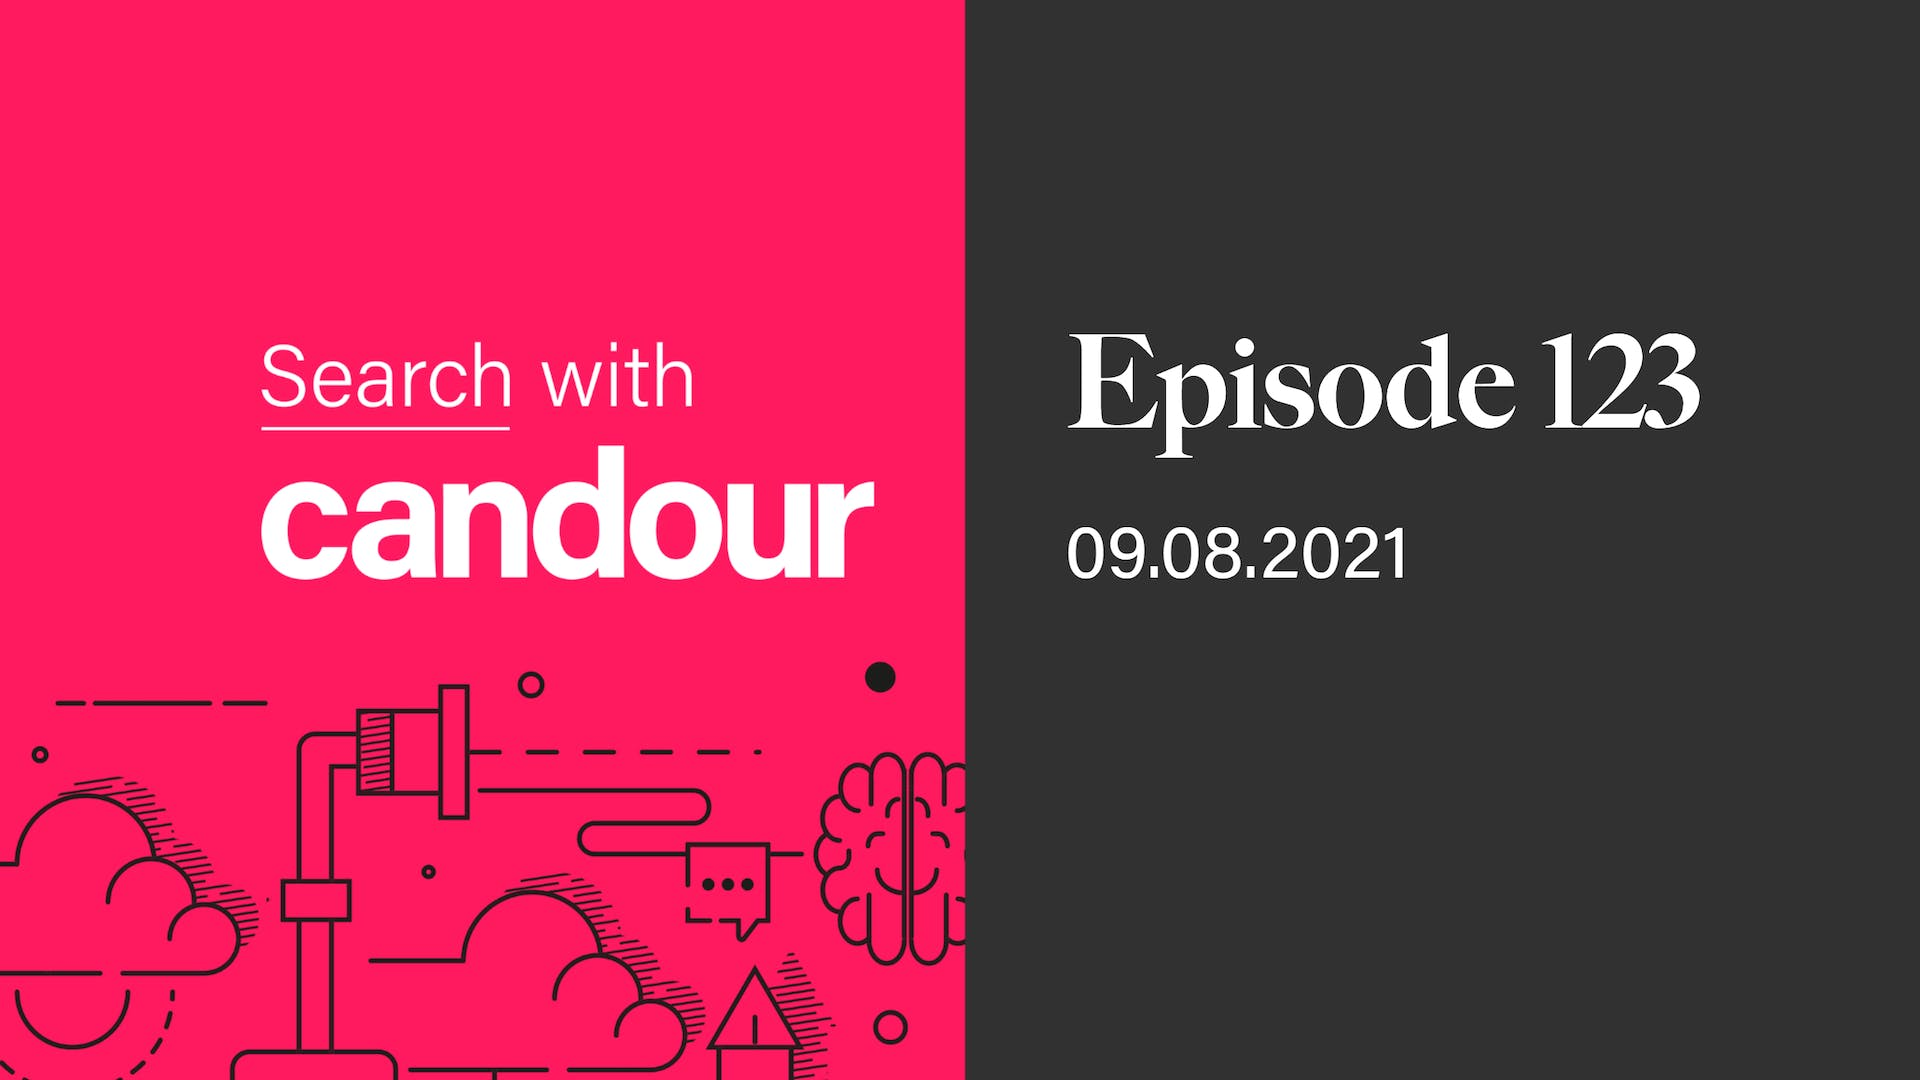 Episode 123 - Search with Candour